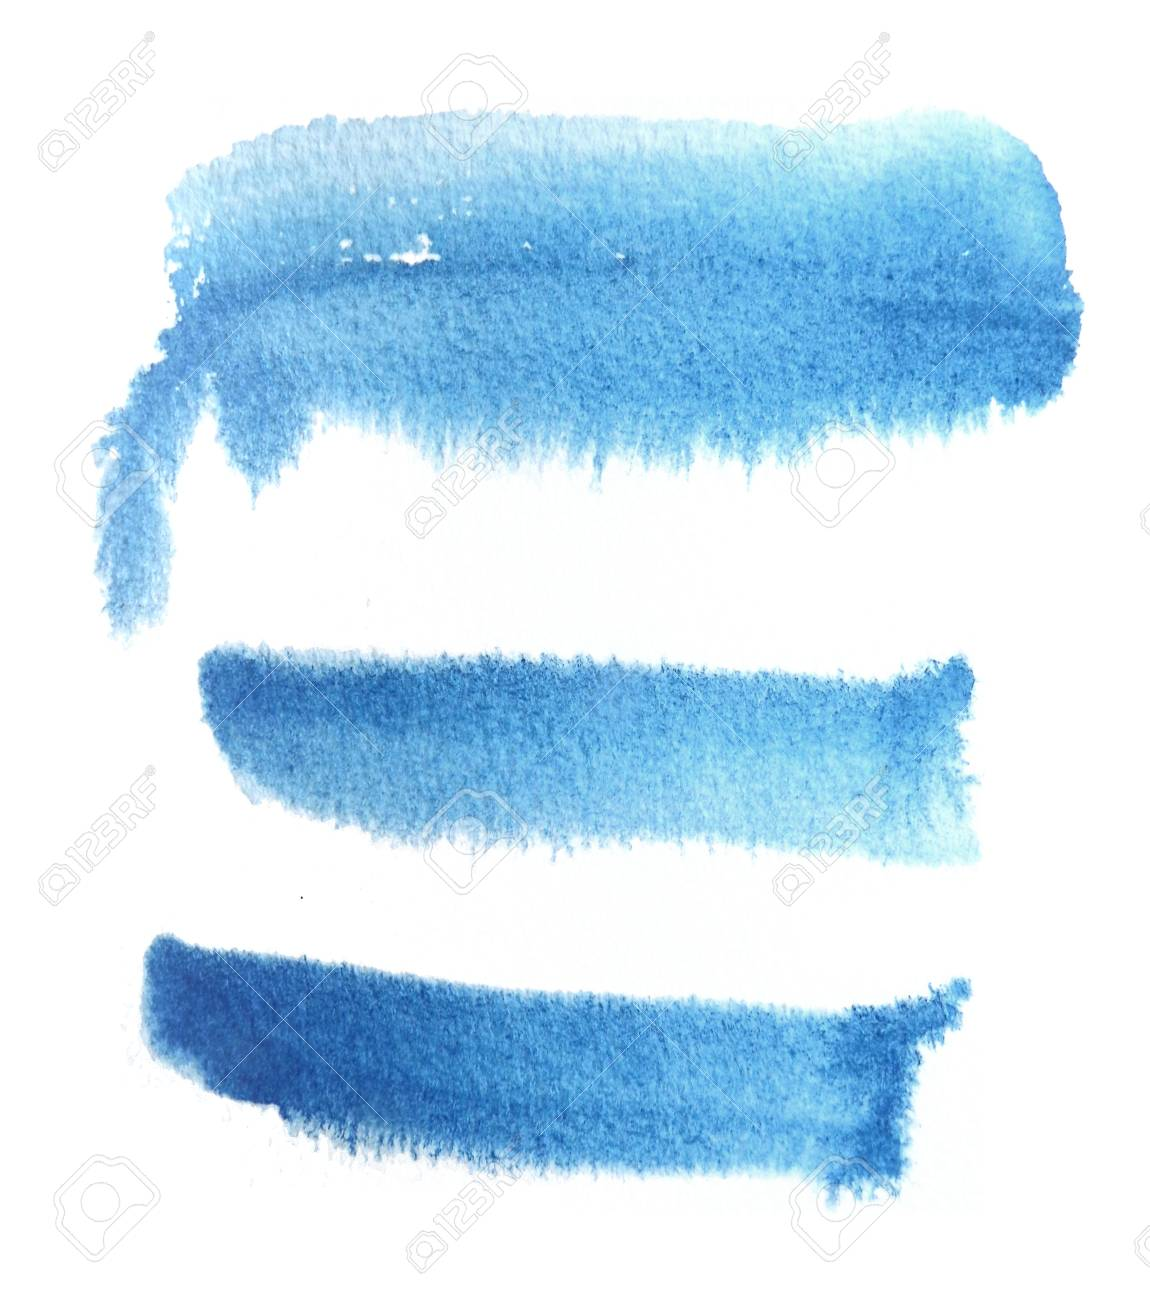 3 rough brush strokes in blue semi transparent water based paint